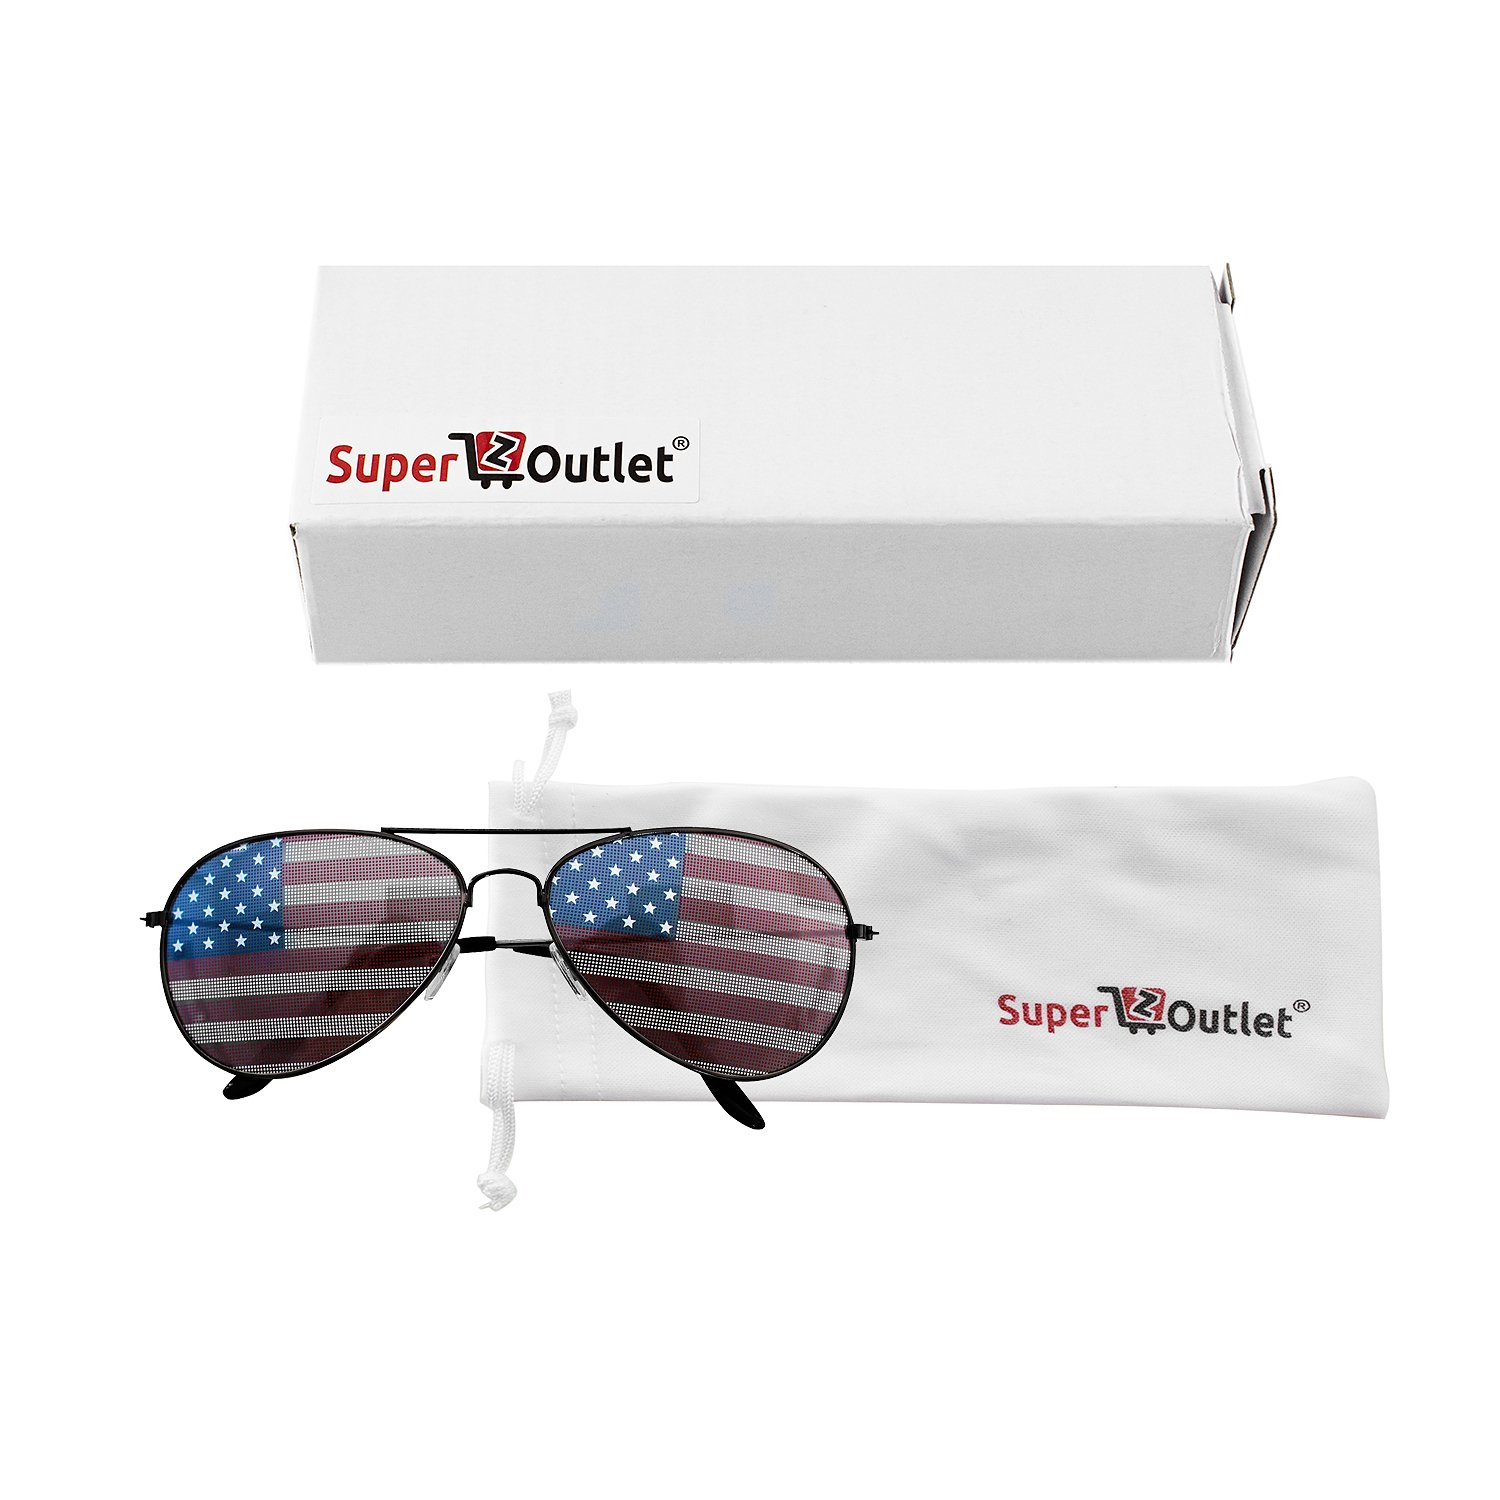 d66731a60646 Super Z Outlet American USA Flag Design Metal Frame Aviator Unisex  Sunglasses with Print Patterned Lens for Sun Protection ...